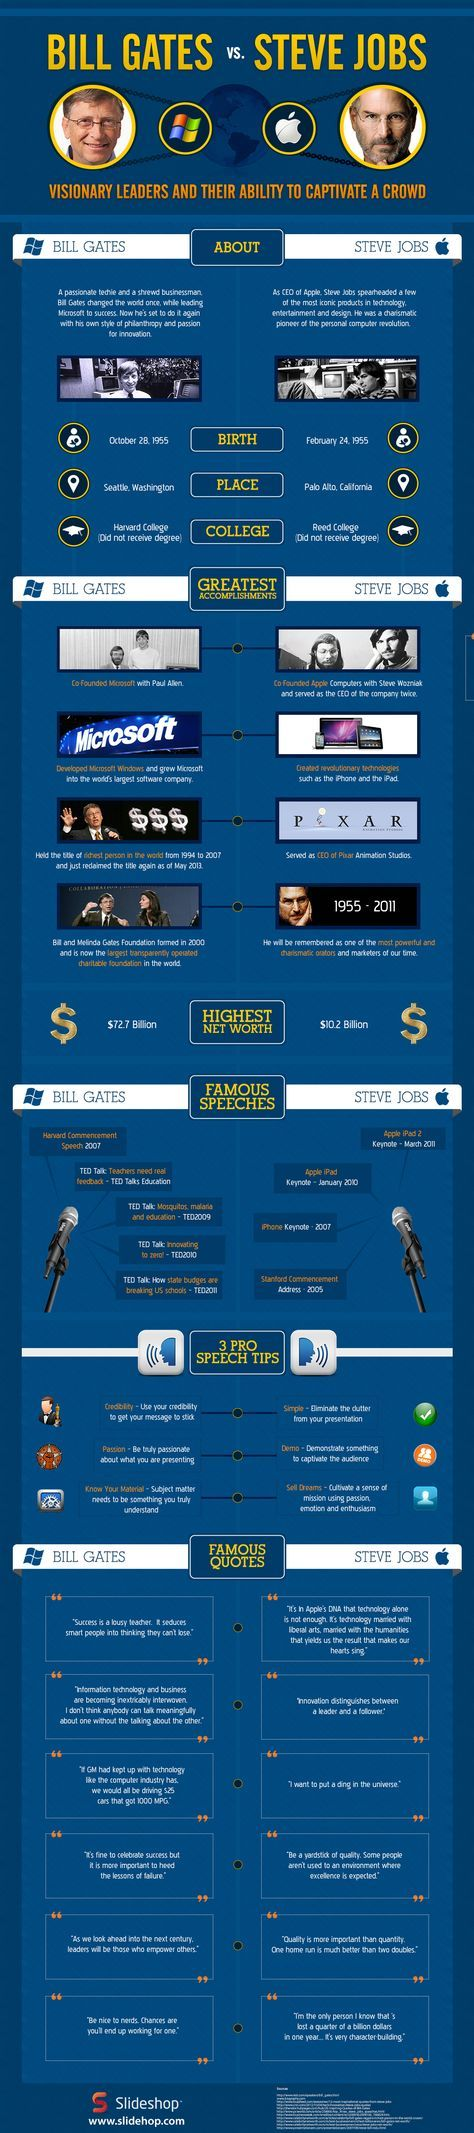 Tips to Become Tech Leaders from Bill Gates and Steve Jobs - Tipsographic